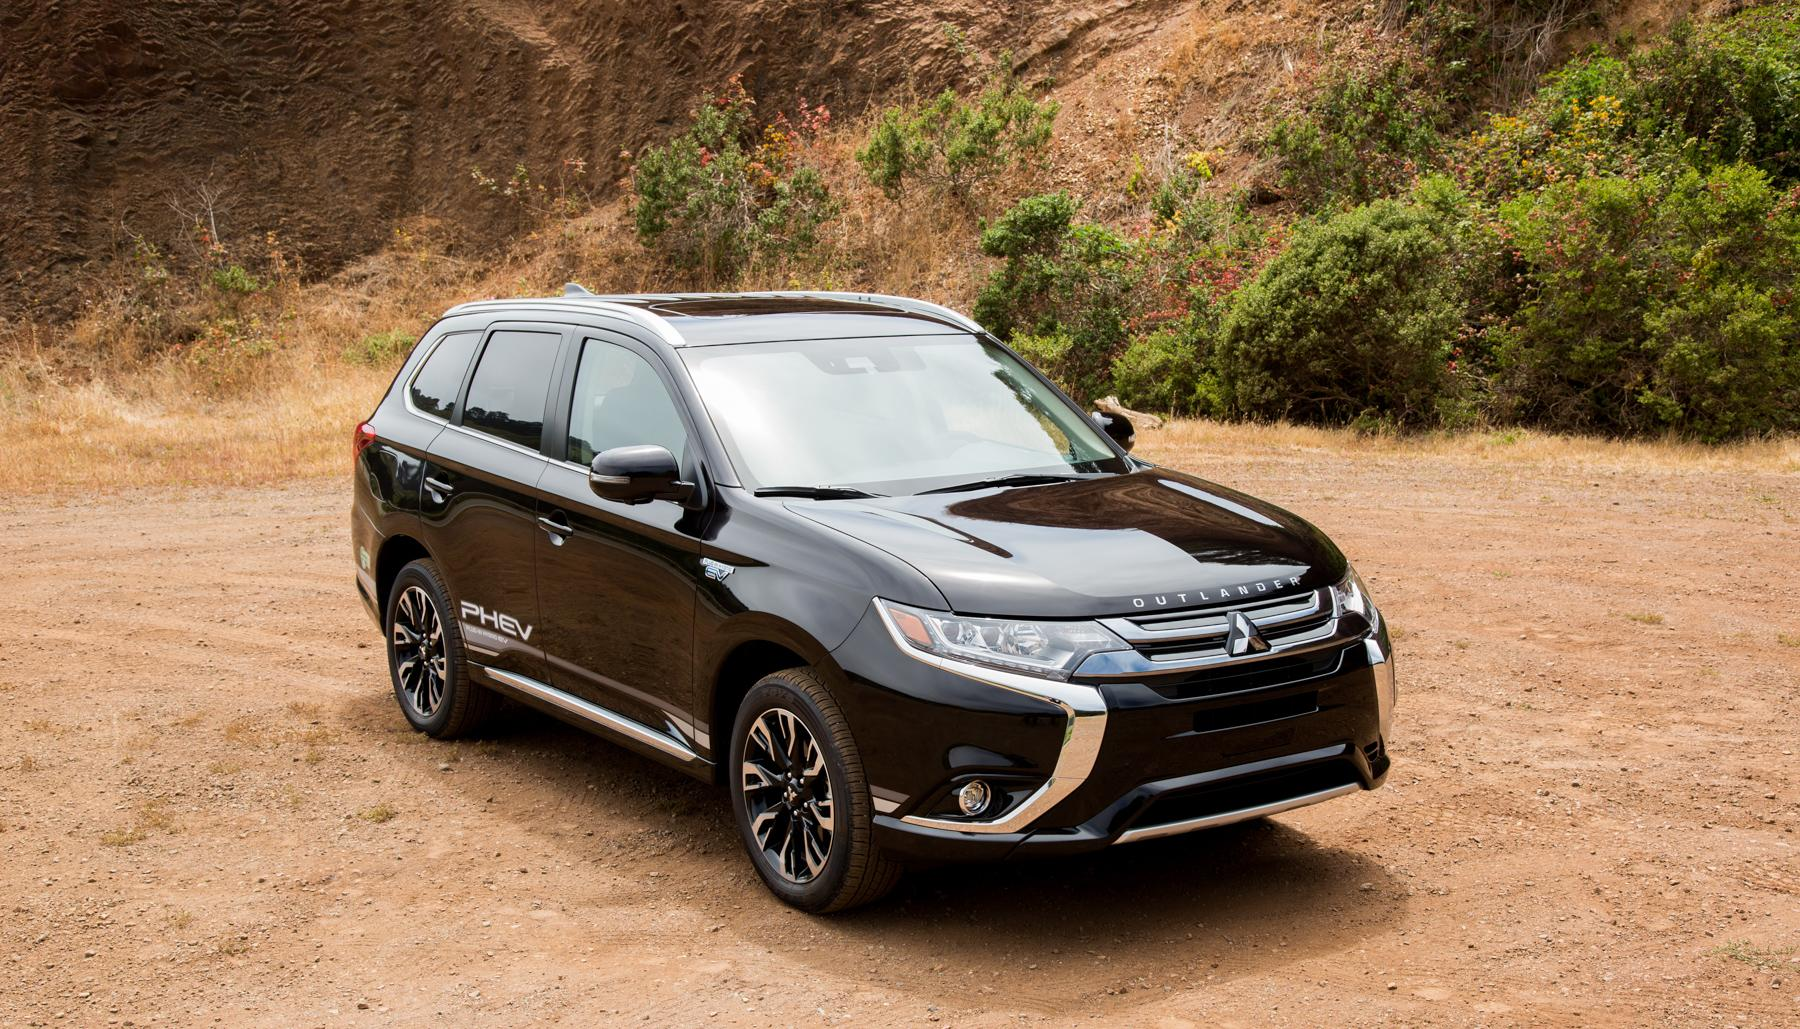 Mitsubishi S Outlander Plug In Hybrid Is An Understated Surprise Engadget